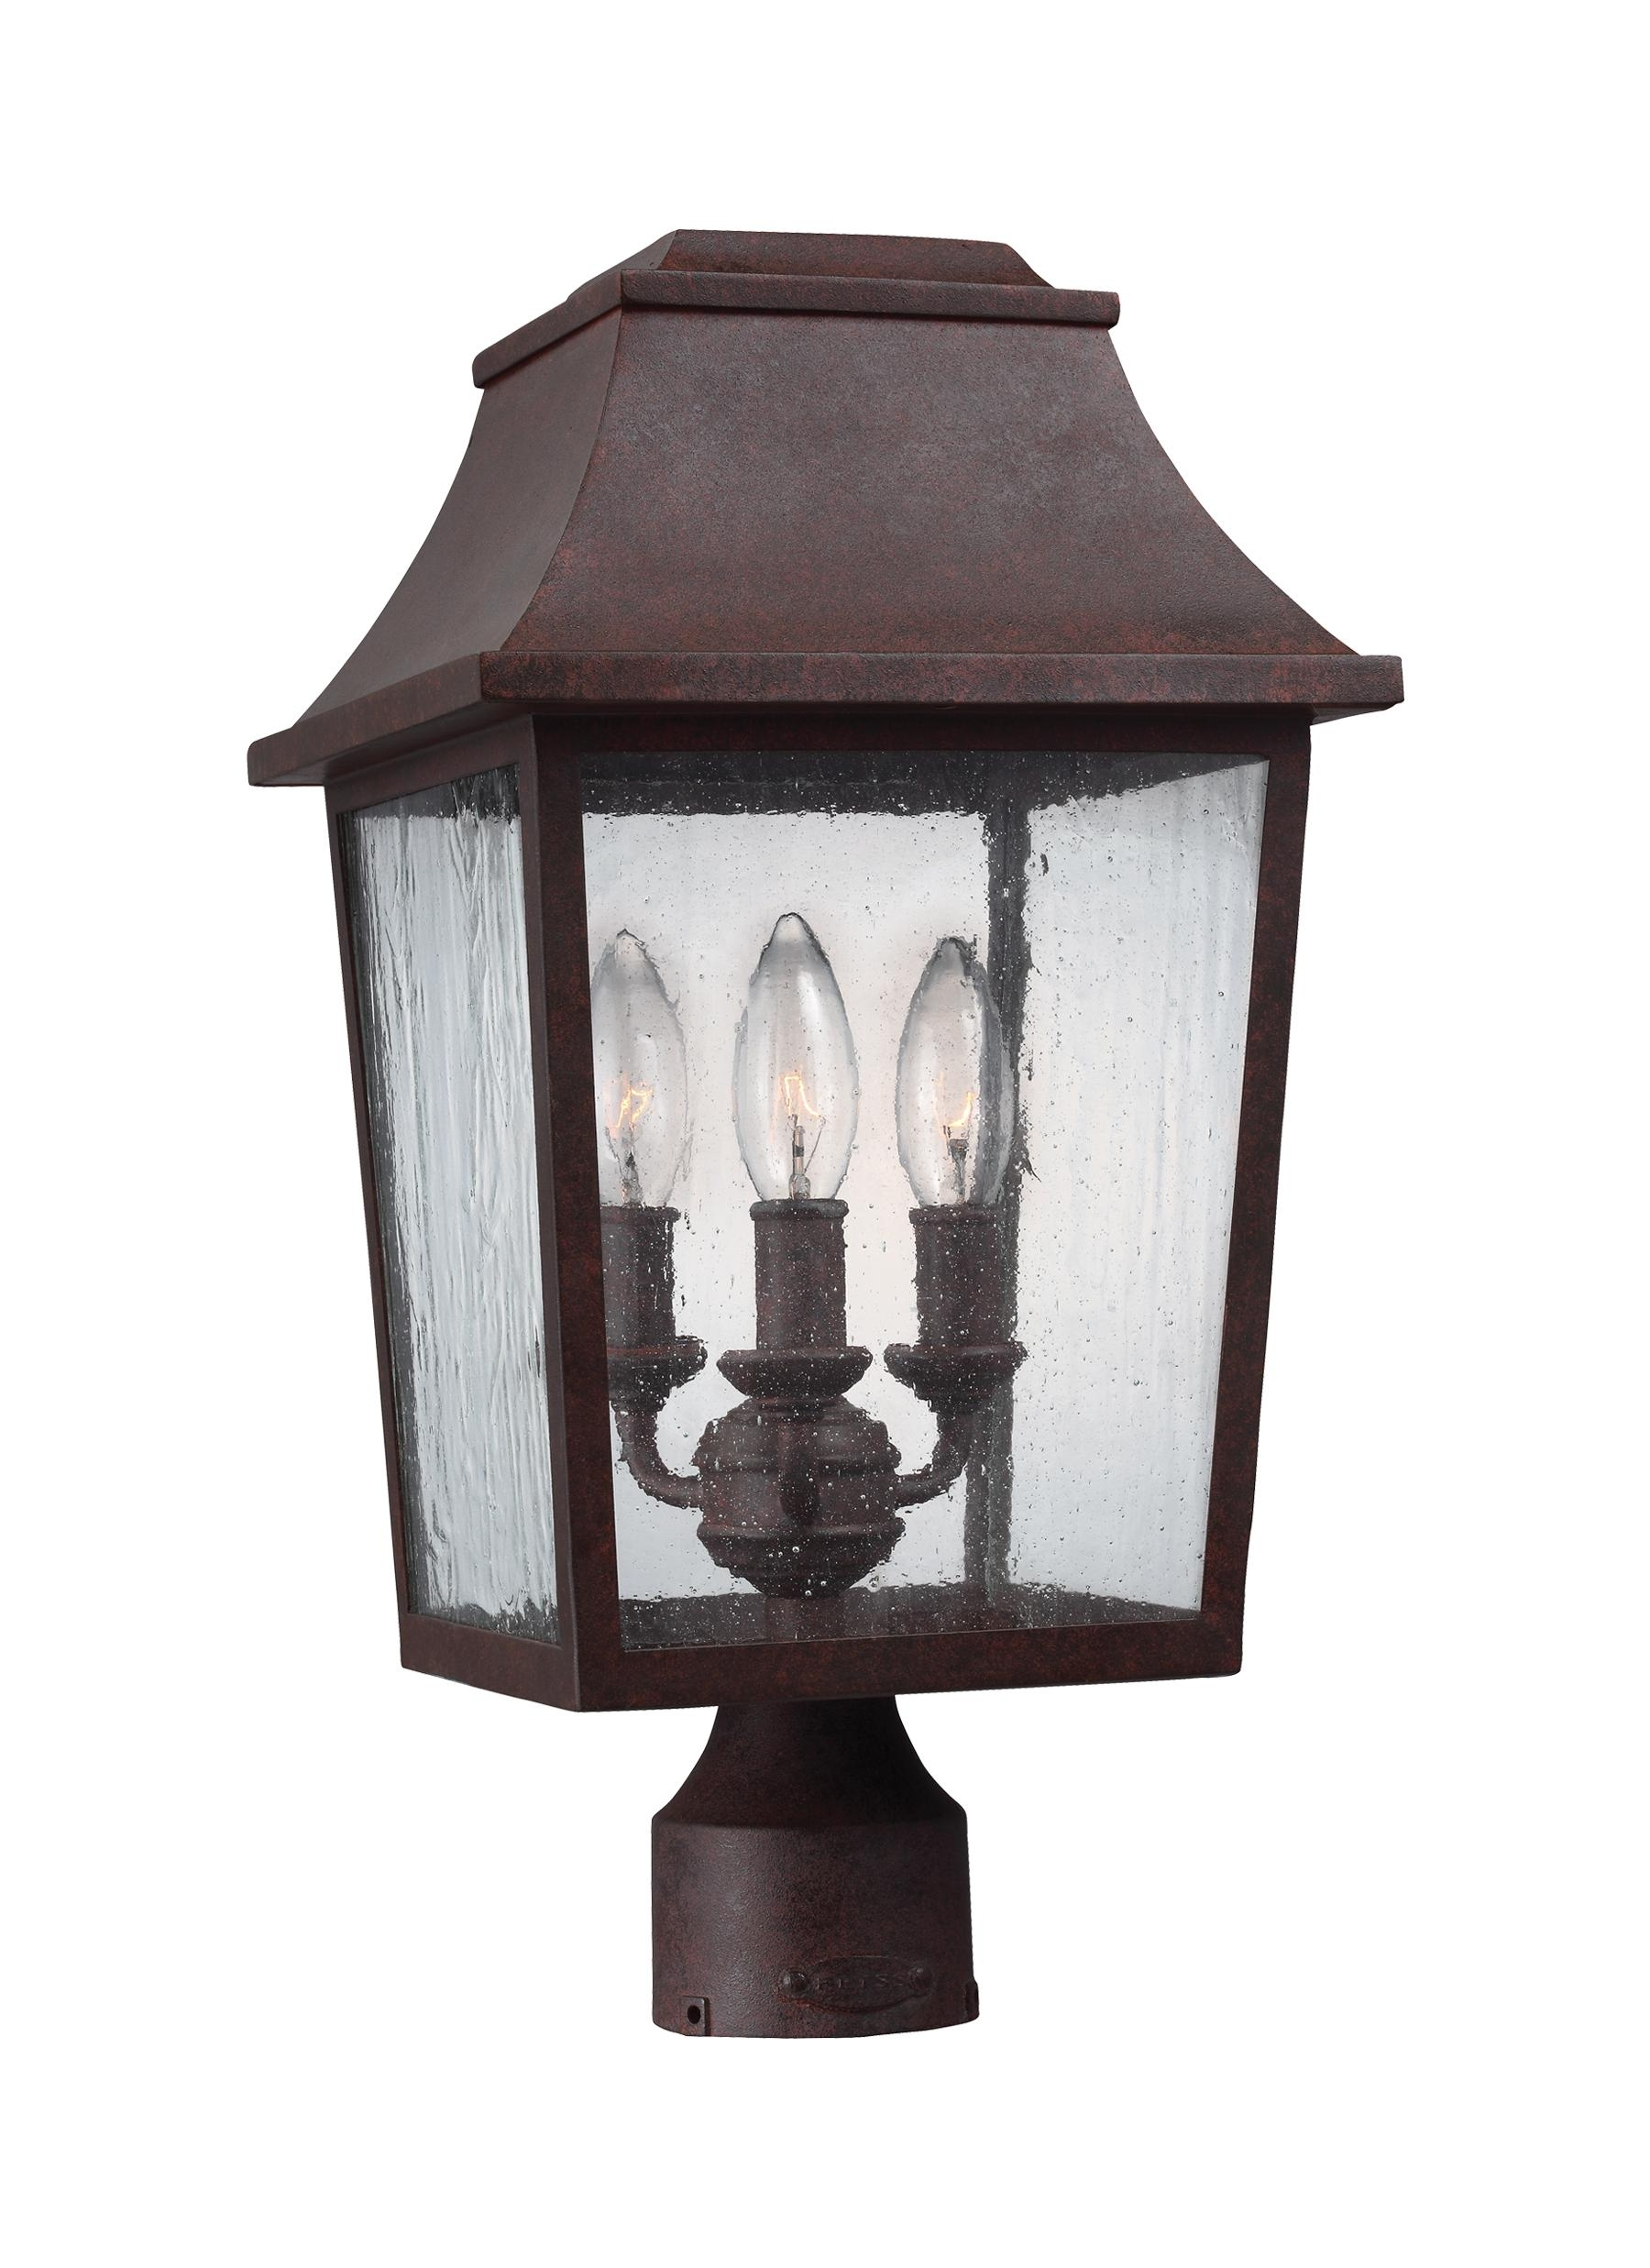 Ol11909Pcr,3 – Light Outdoor Post Lantern,patina Copper Throughout Copper Outdoor Lanterns (View 11 of 20)